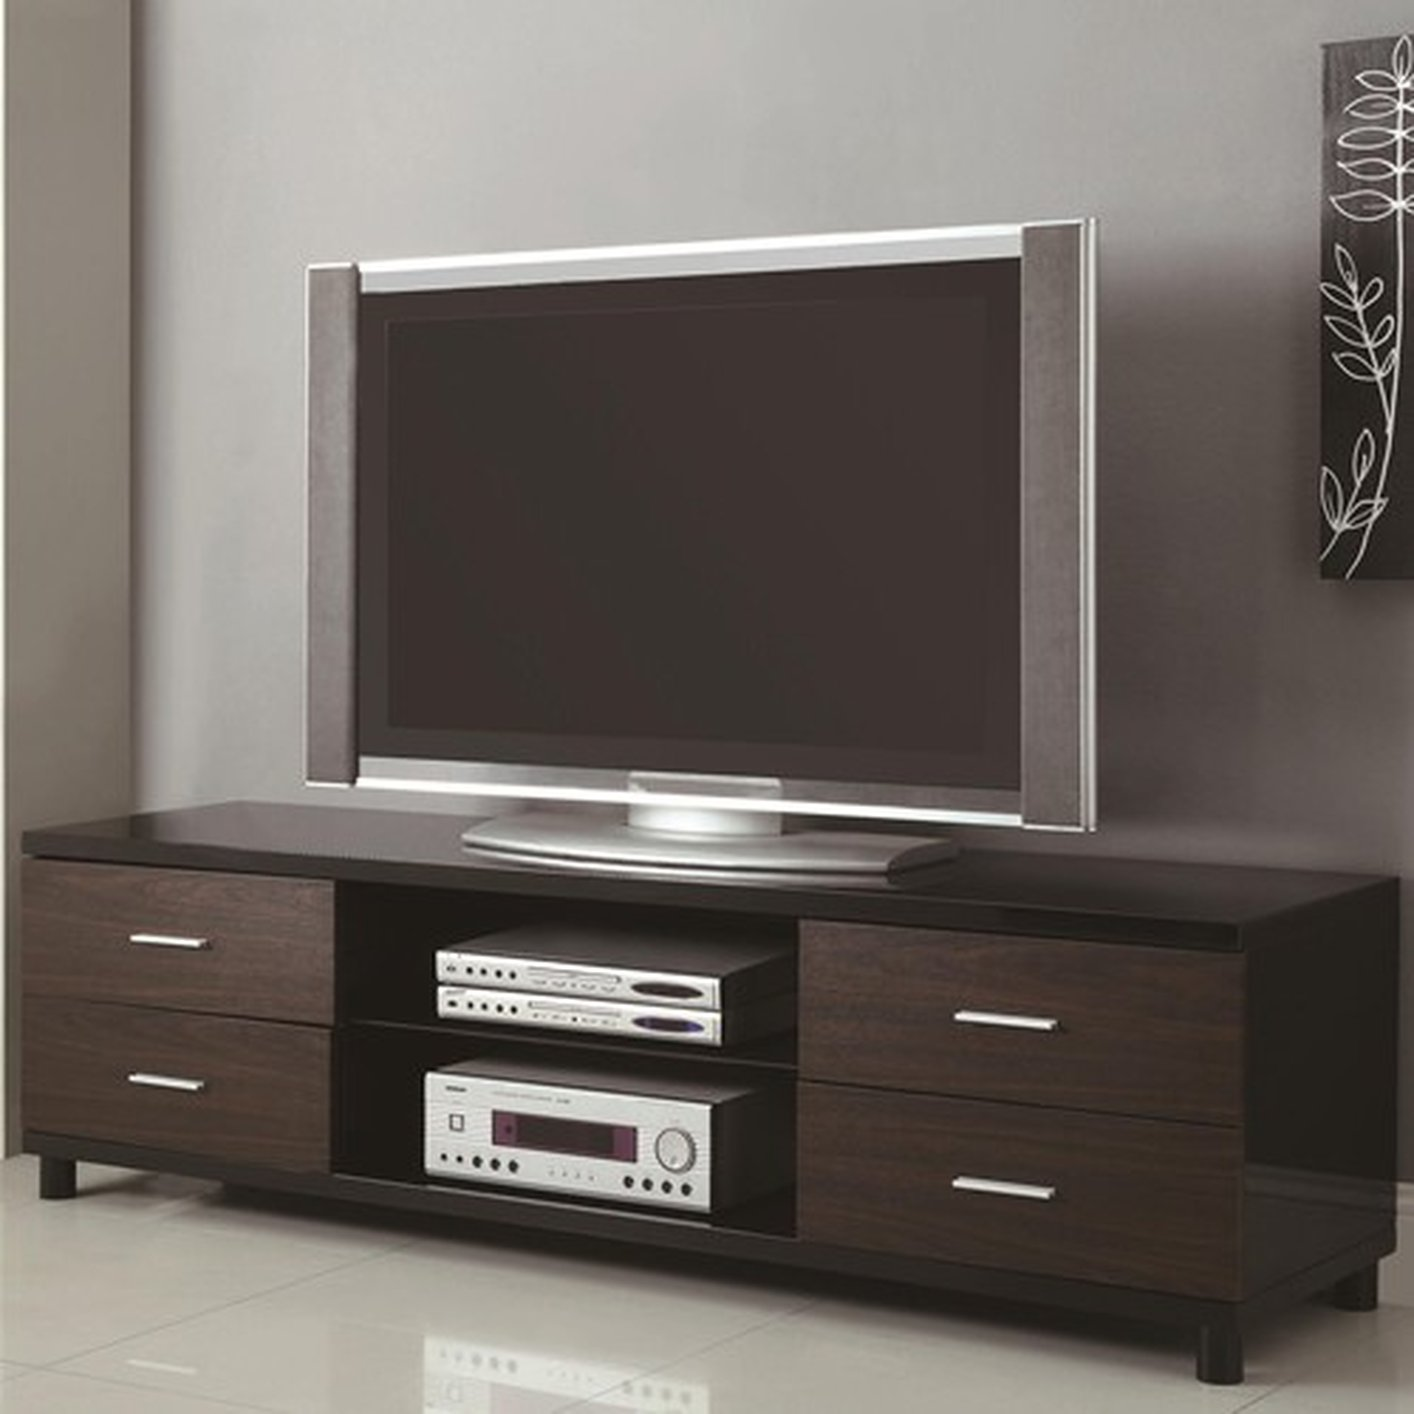 Black Cabinets Kitchen Brown Wood Tv Stand Steal A Sofa Furniture Outlet Los